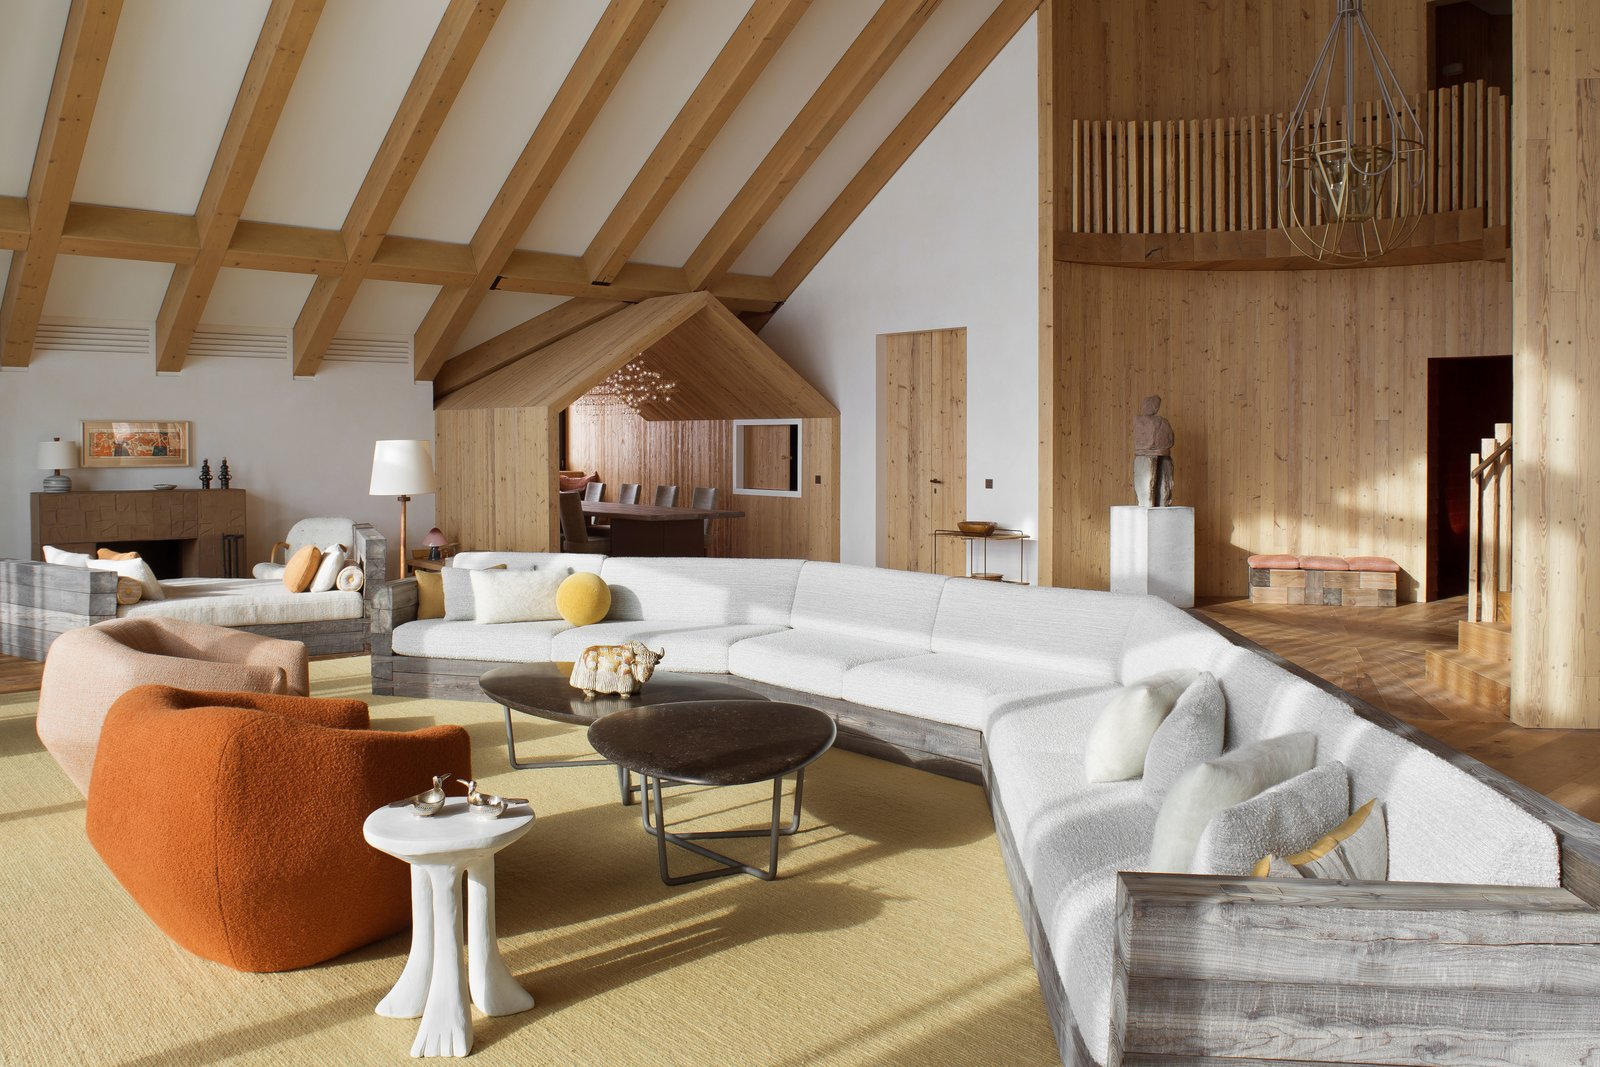 A gorgeous chalet in the swiss alps perfectly blends modern and